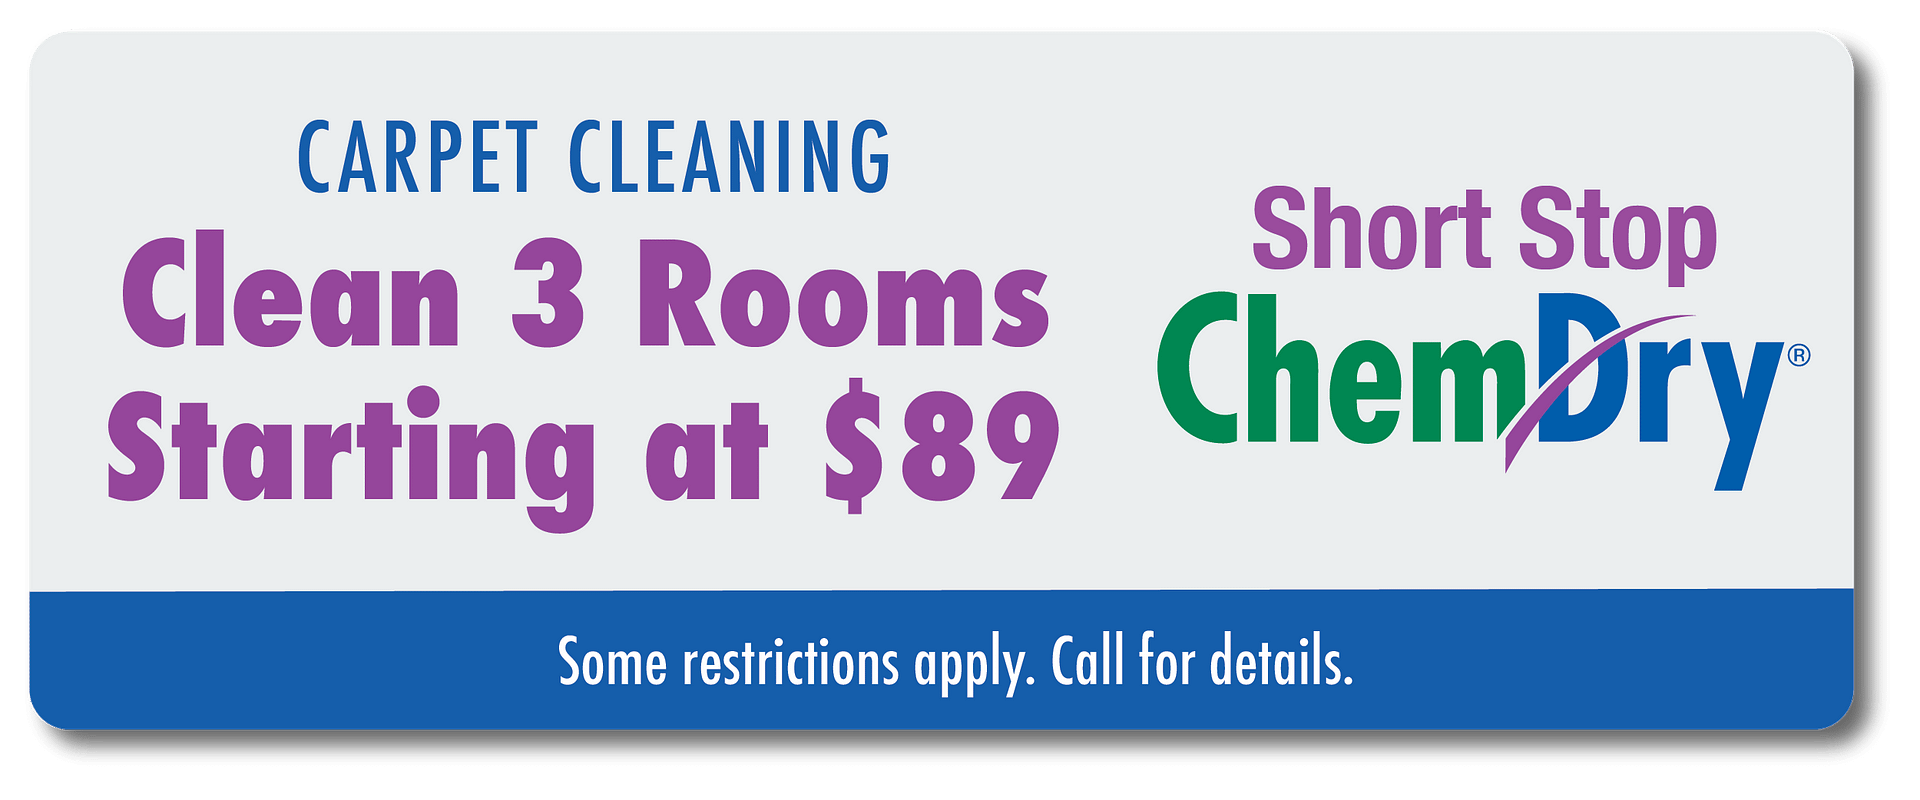 clean 3 rooms carpet for $89